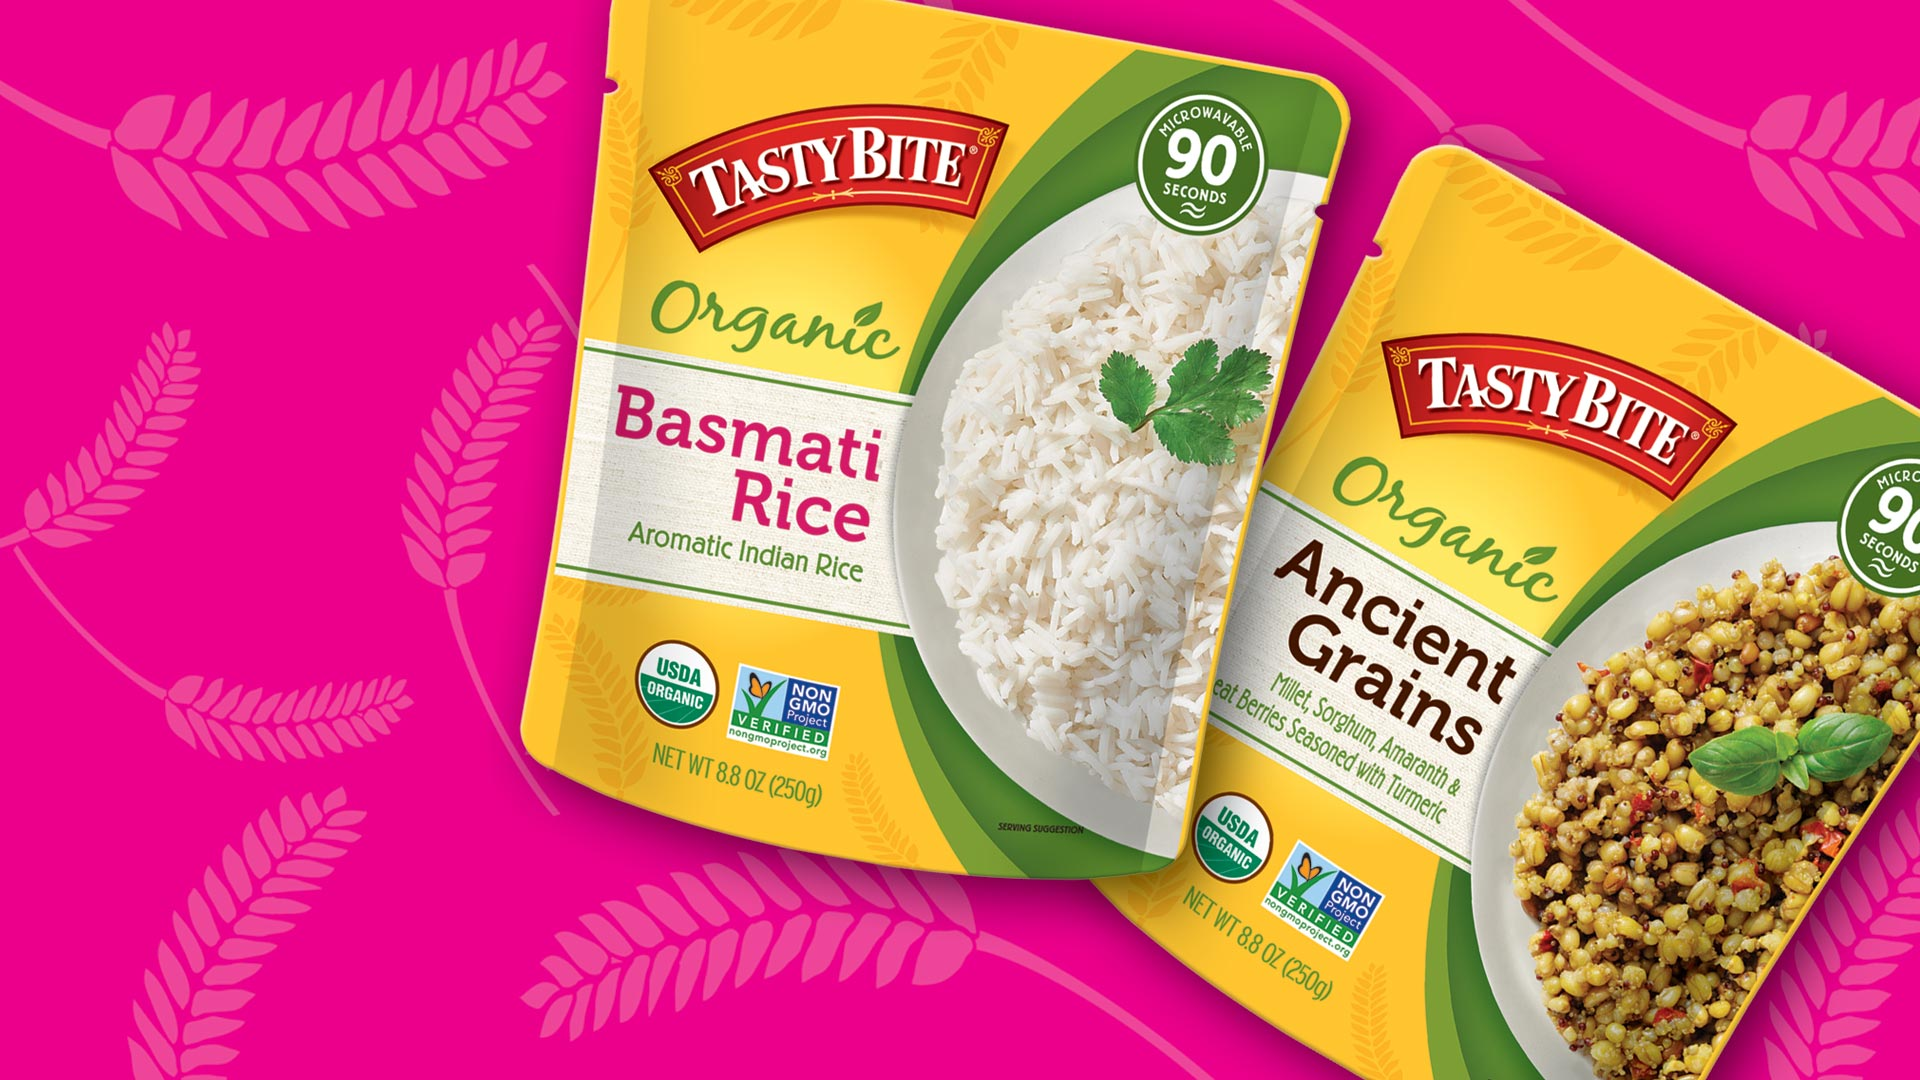 Tasty Bite Organic Basmati Rice & Organic Ancient Grains